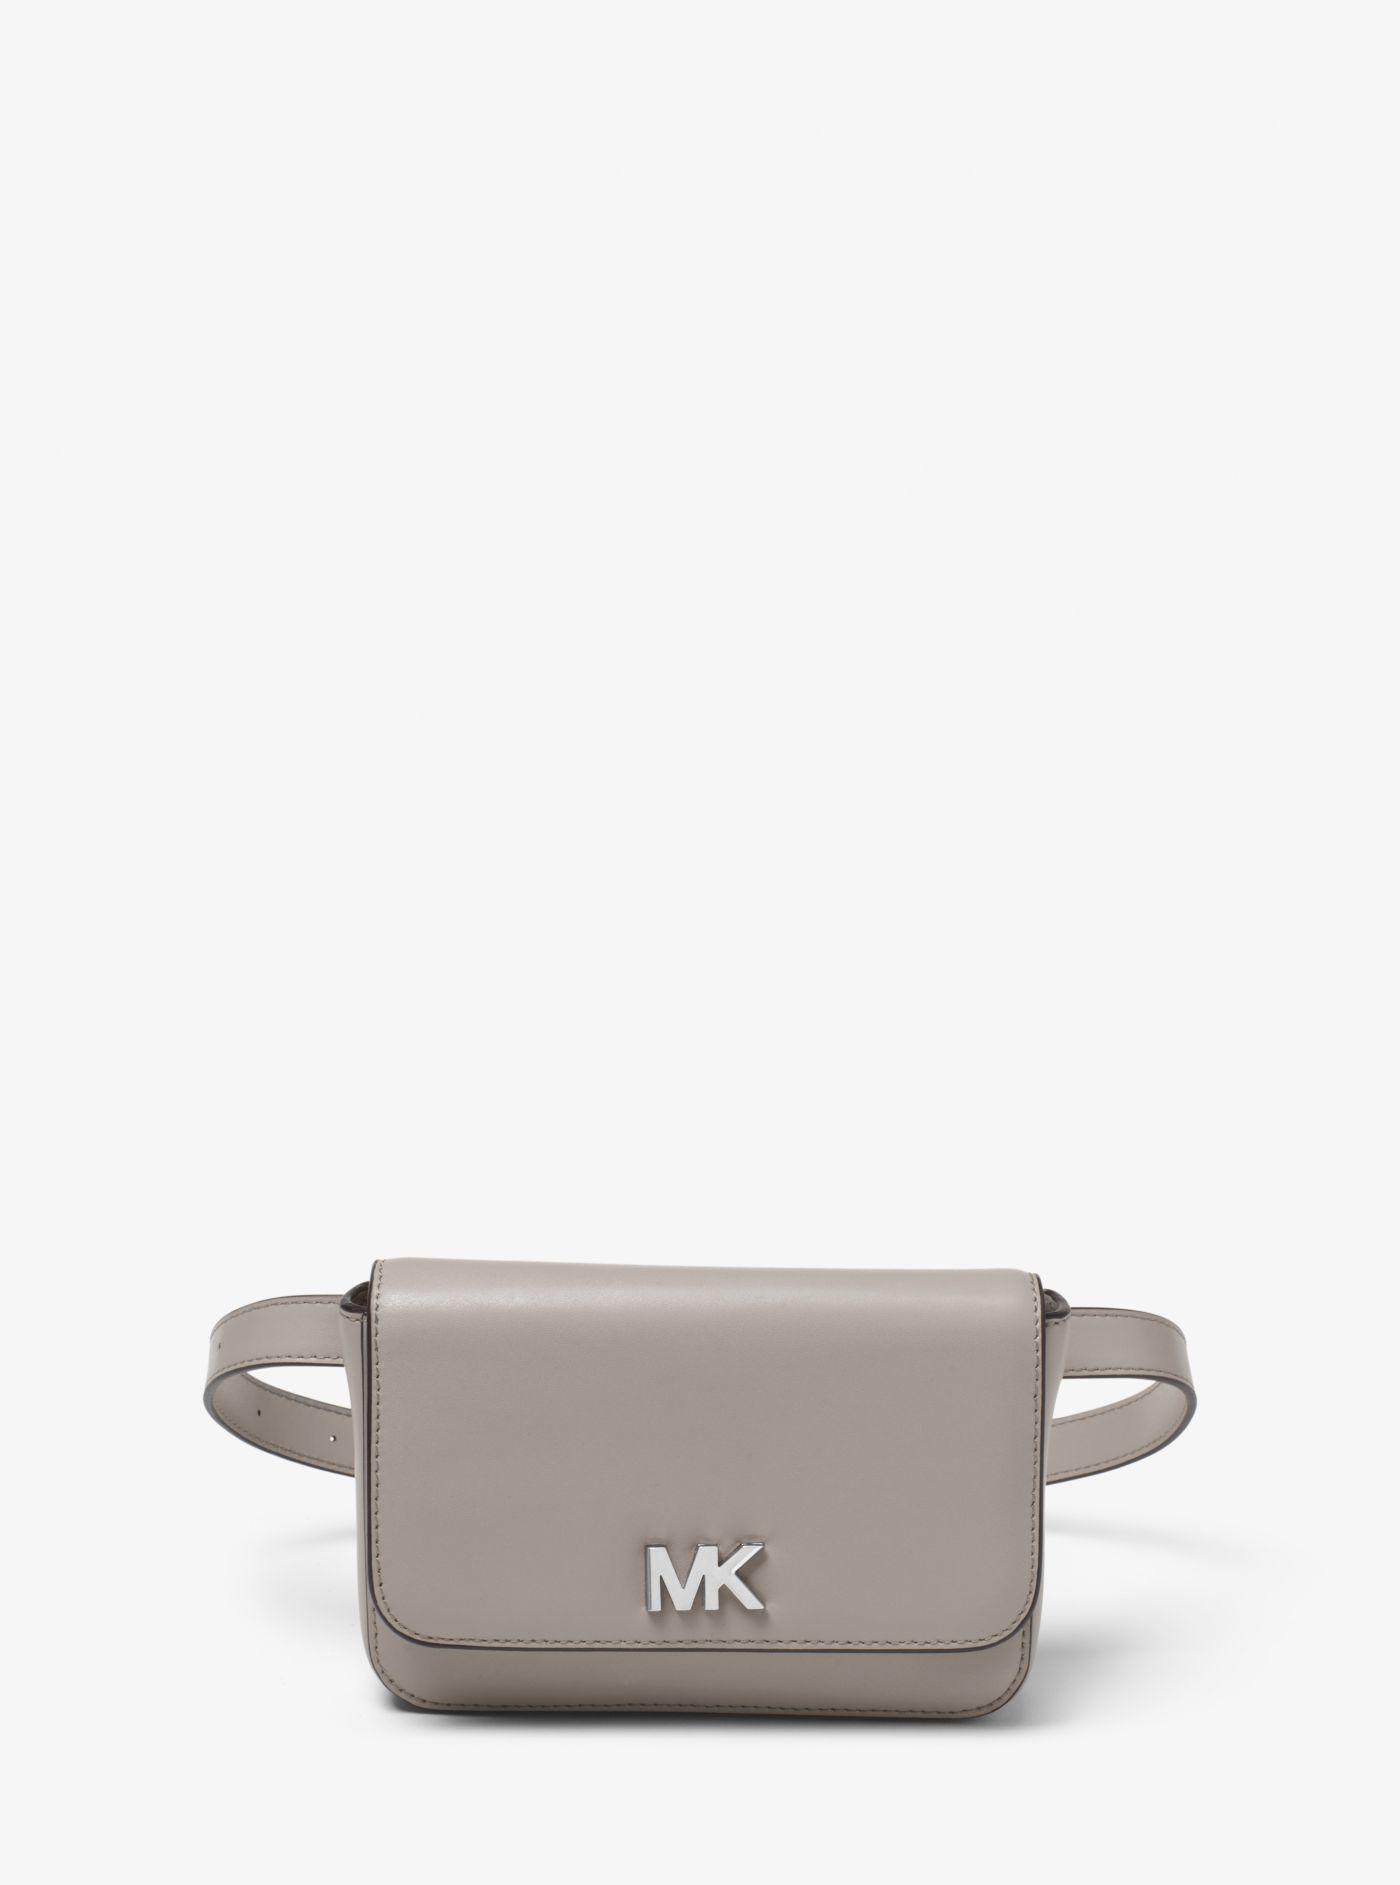 f51c7bebcb4af Lyst - Michael Kors Mott Leather Belt Bag in Gray